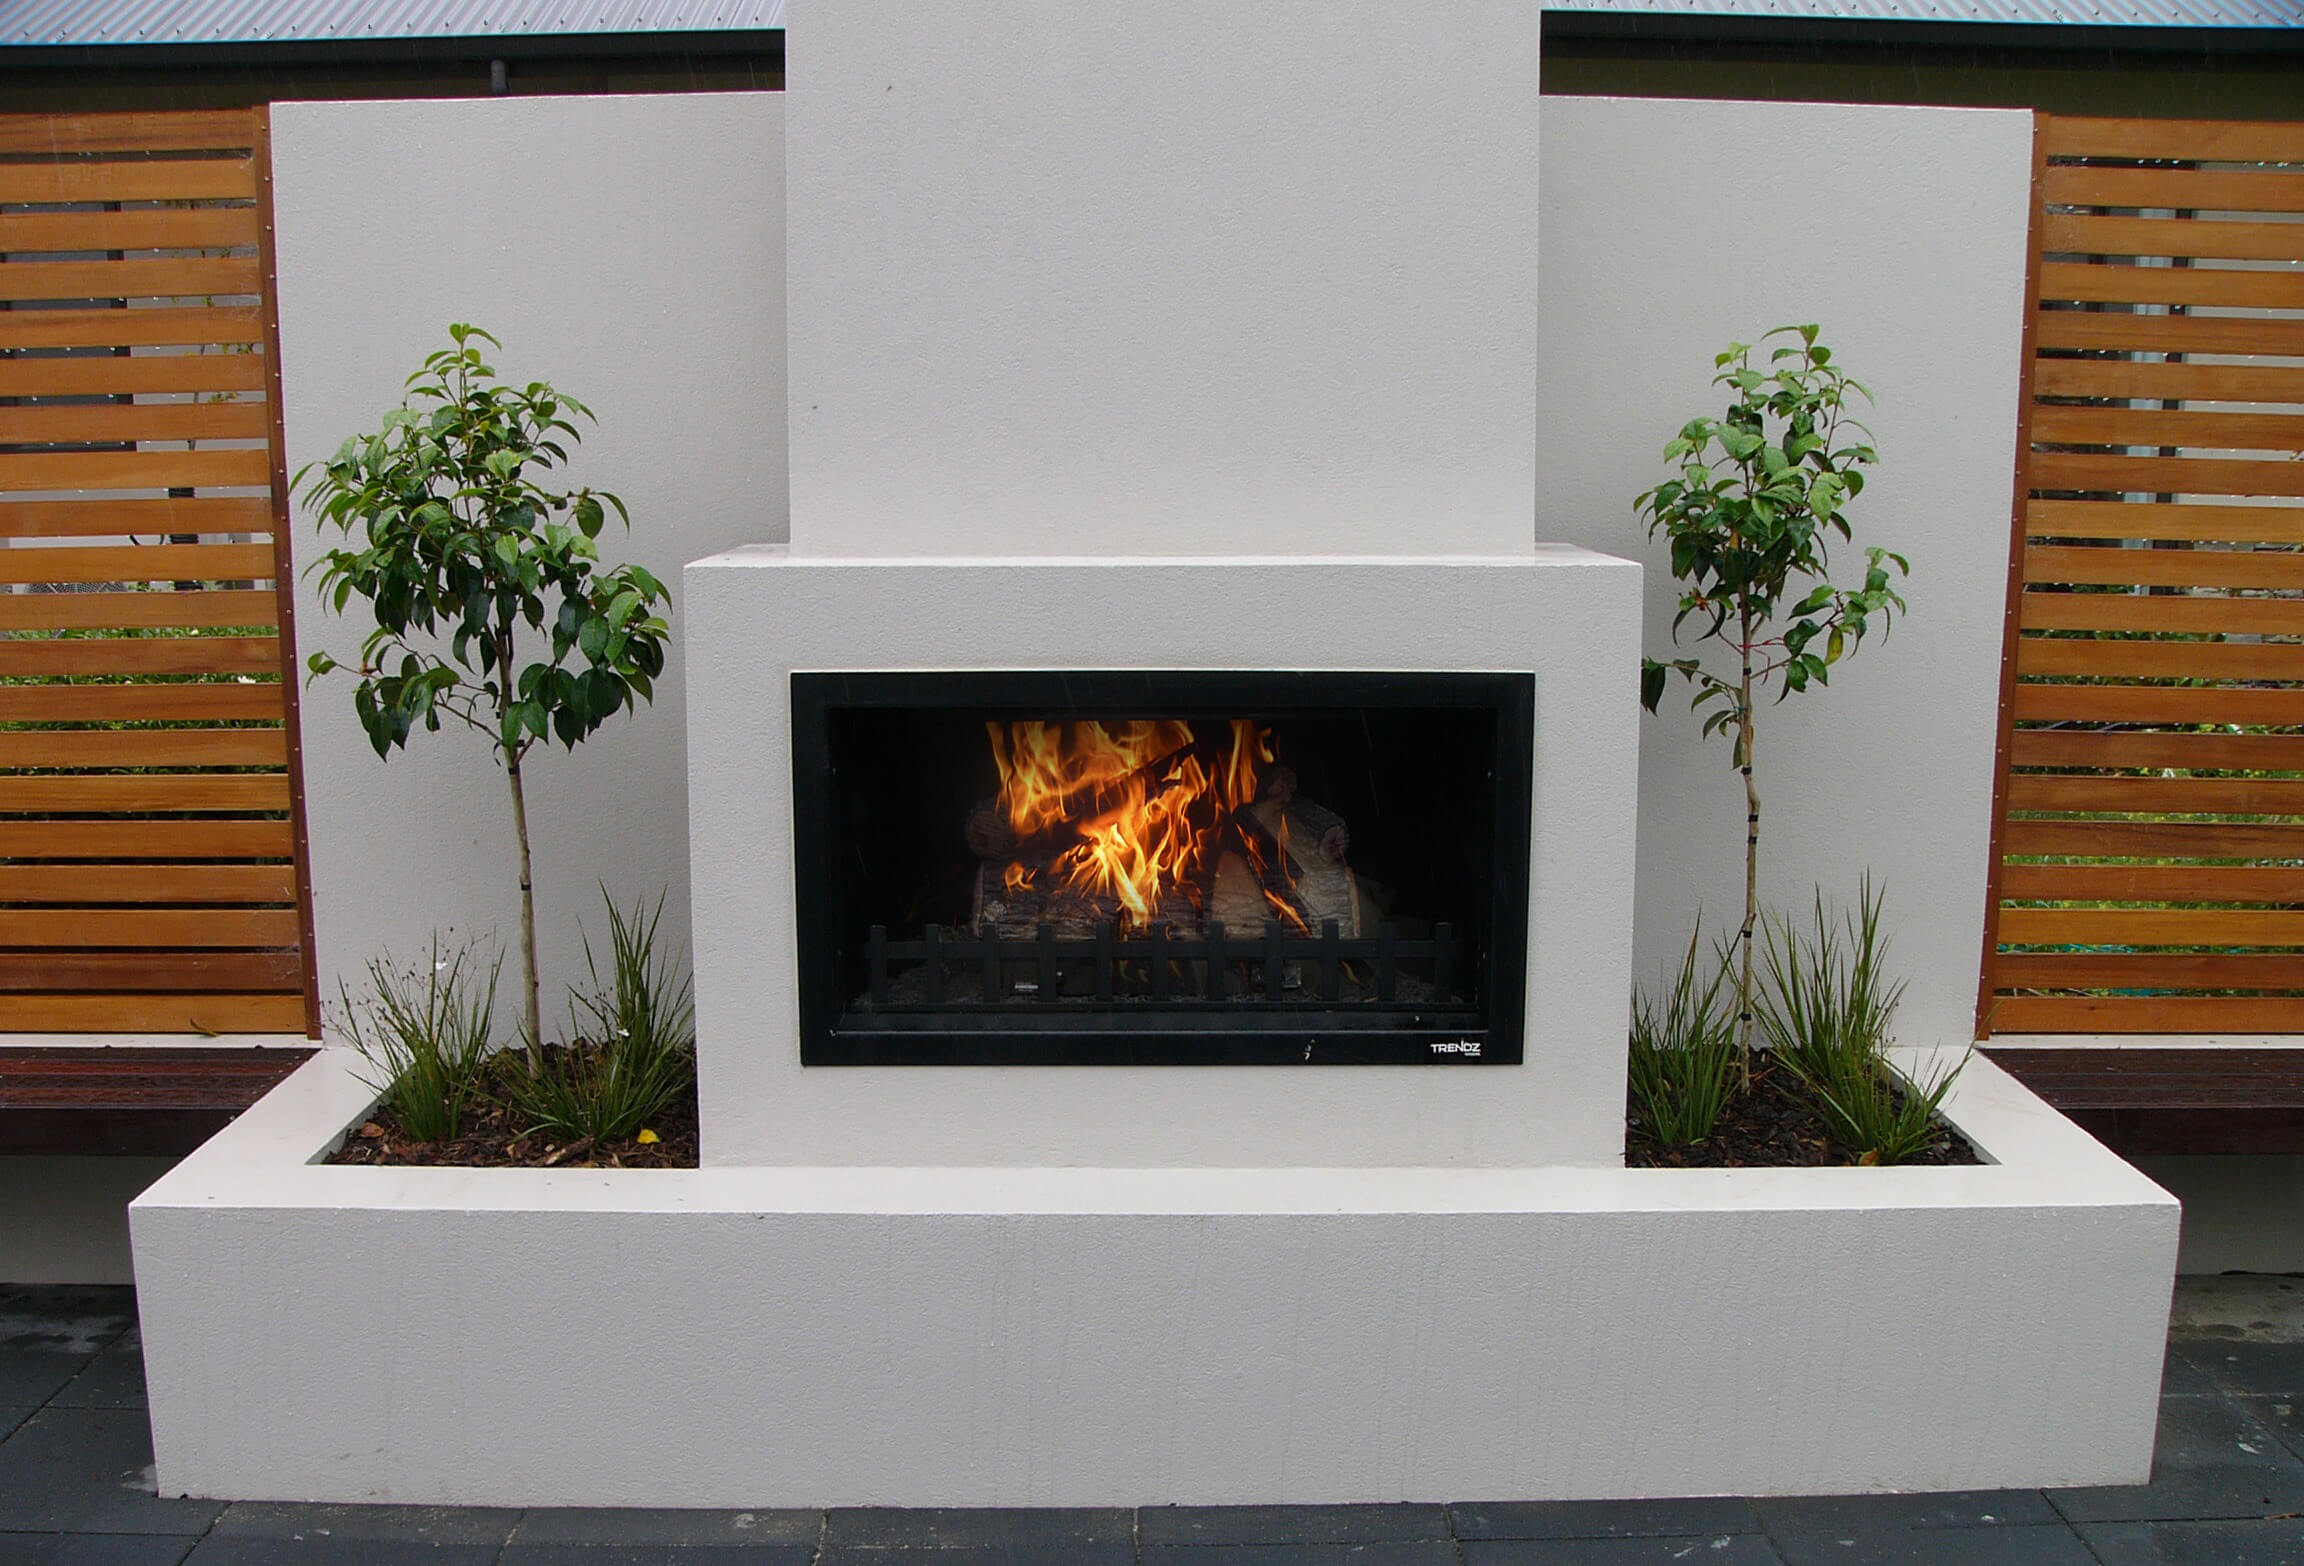 Wood fired outdoor fireplace